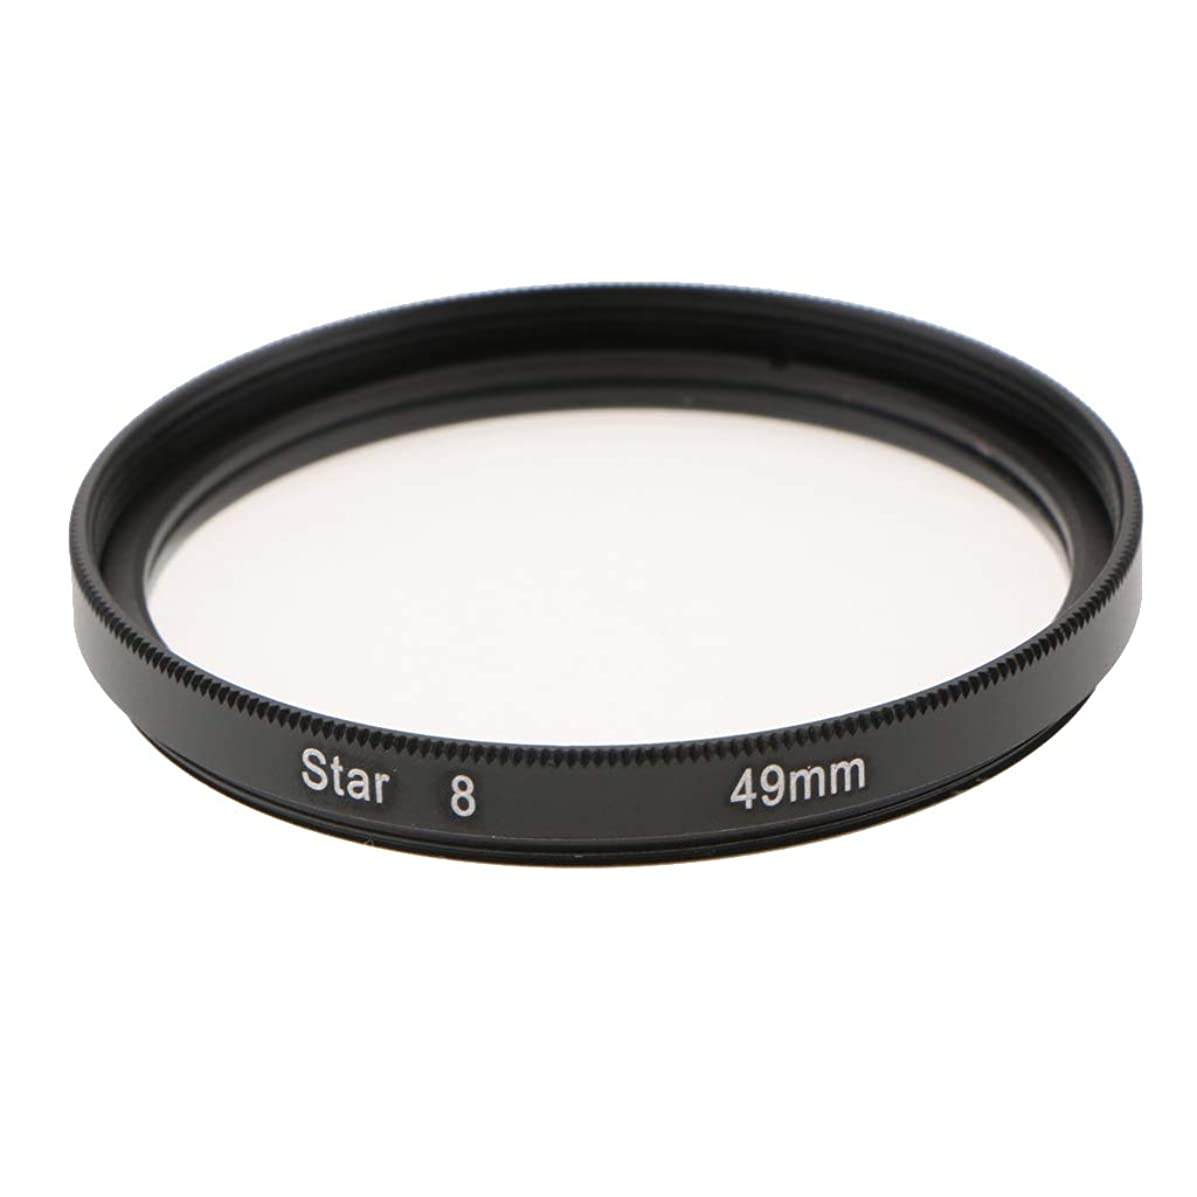 Prettyia Photography 49mm 8 Points Star Cross Screen Lens Filter Made of Optical Glass